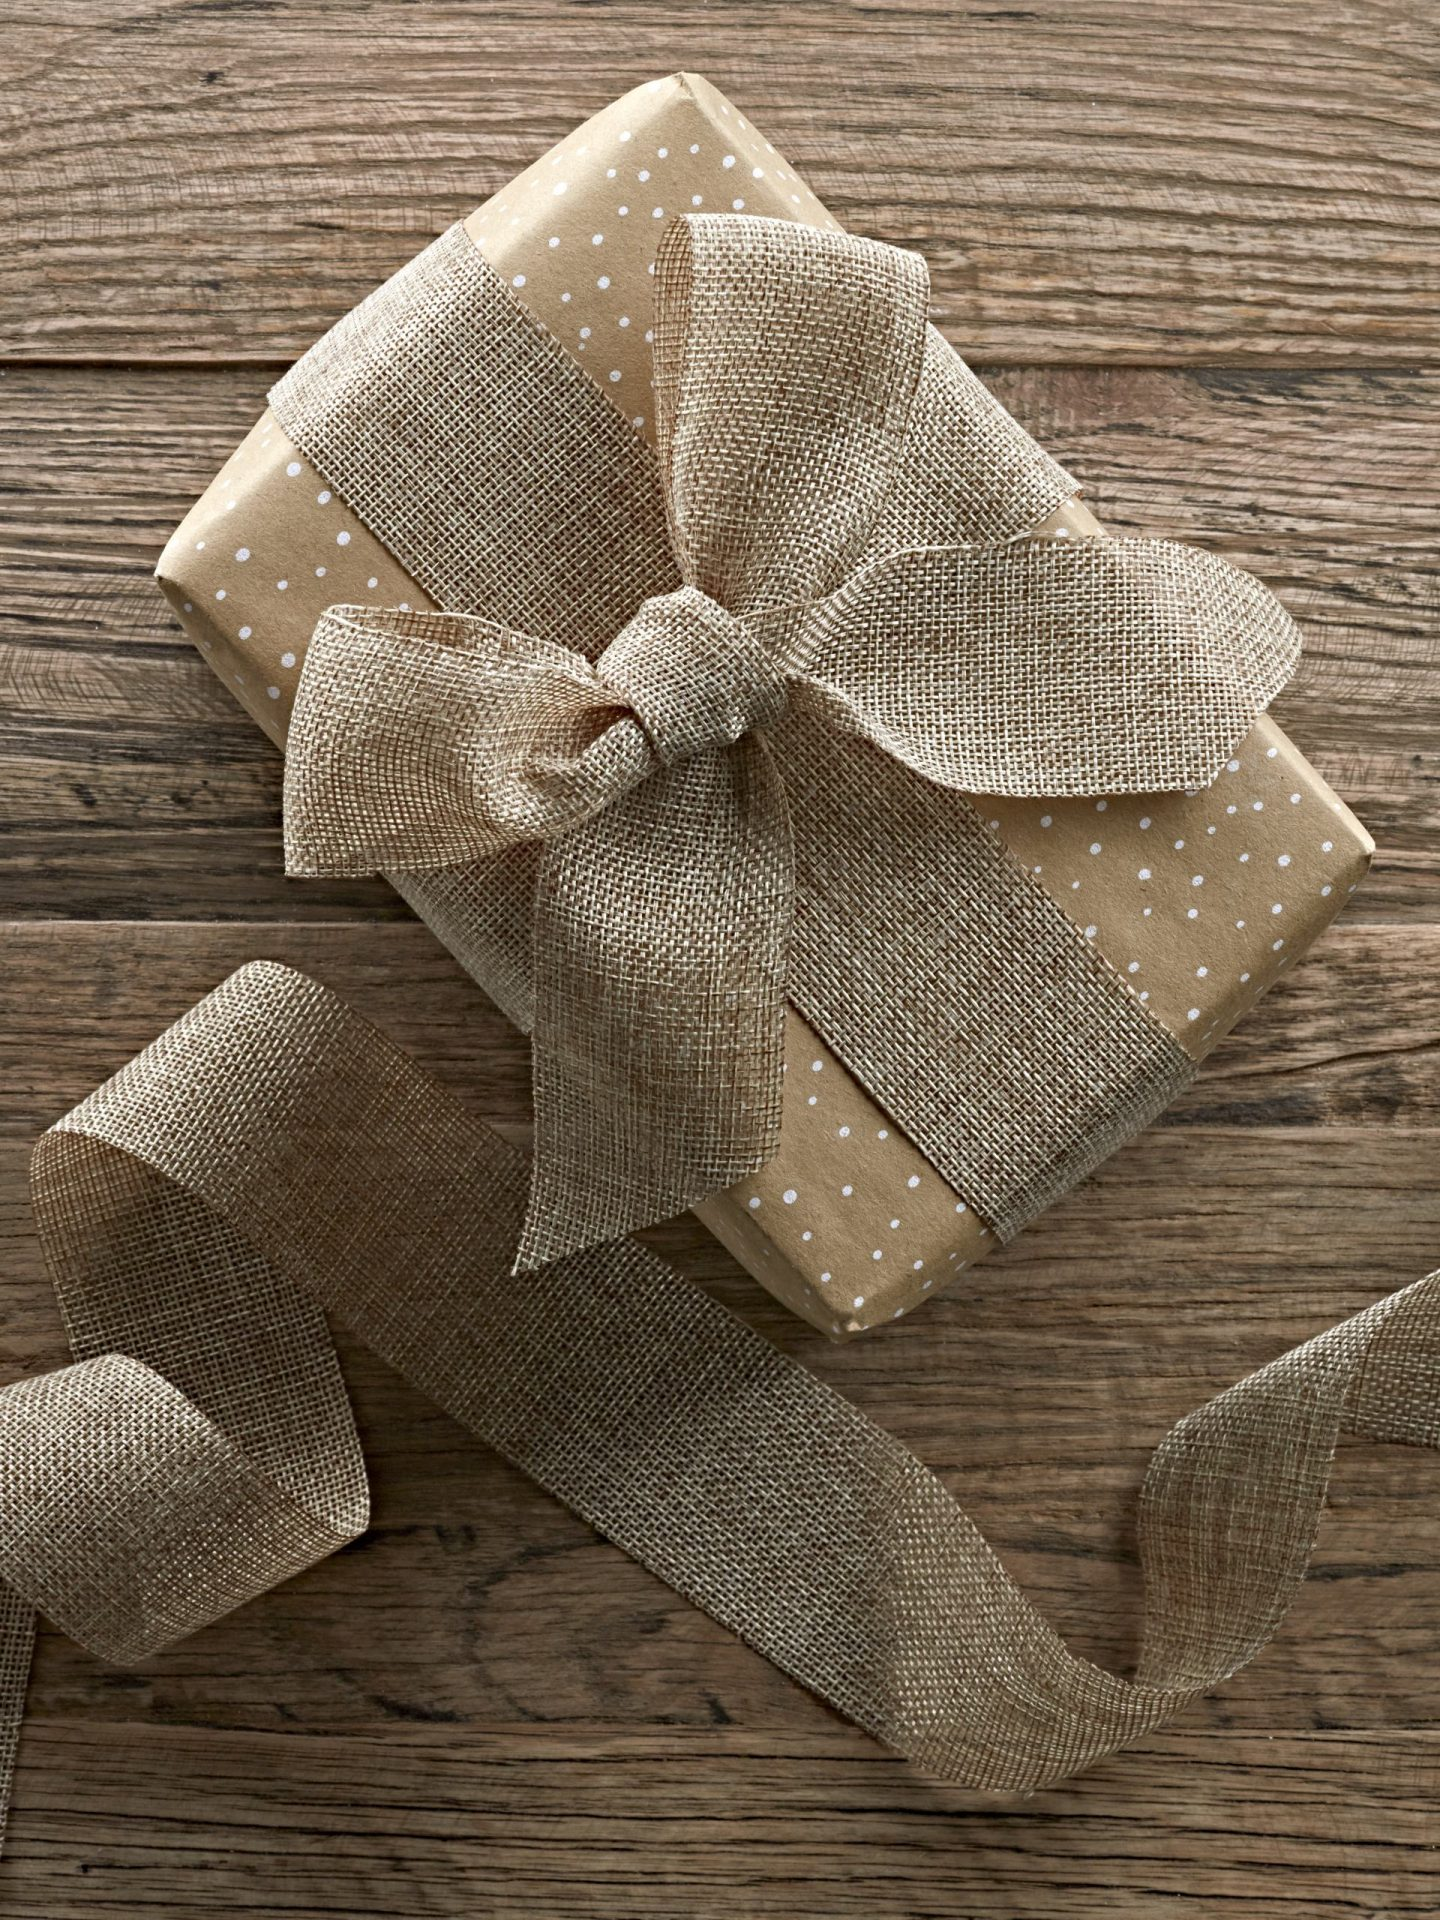 Reversible recycled christmas wrapping paper by cox and cox.